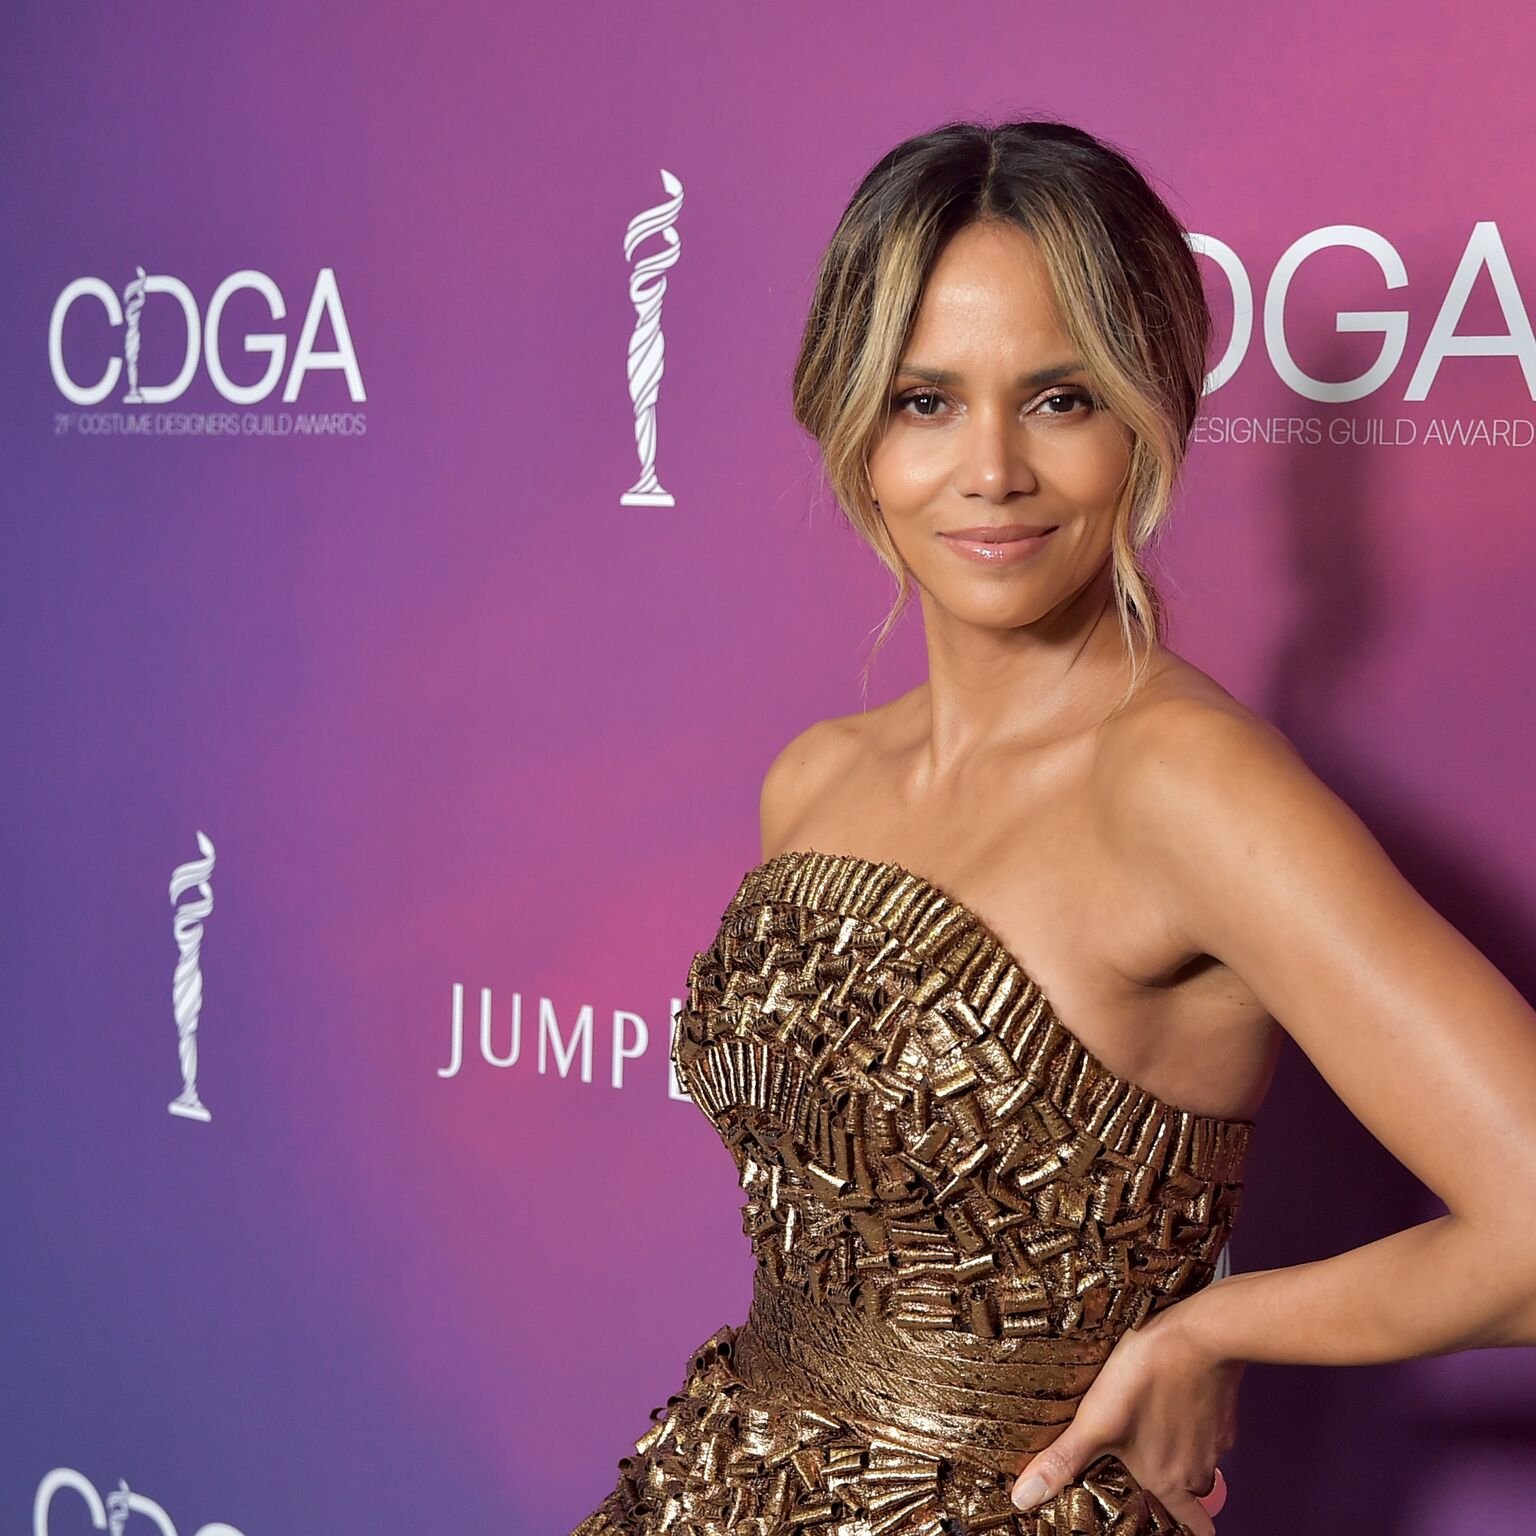 Halle Berry attends The 21st CDGA (Costume Designers Guild Awards) at The Beverly Hilton Hotel    Source: Getty Images